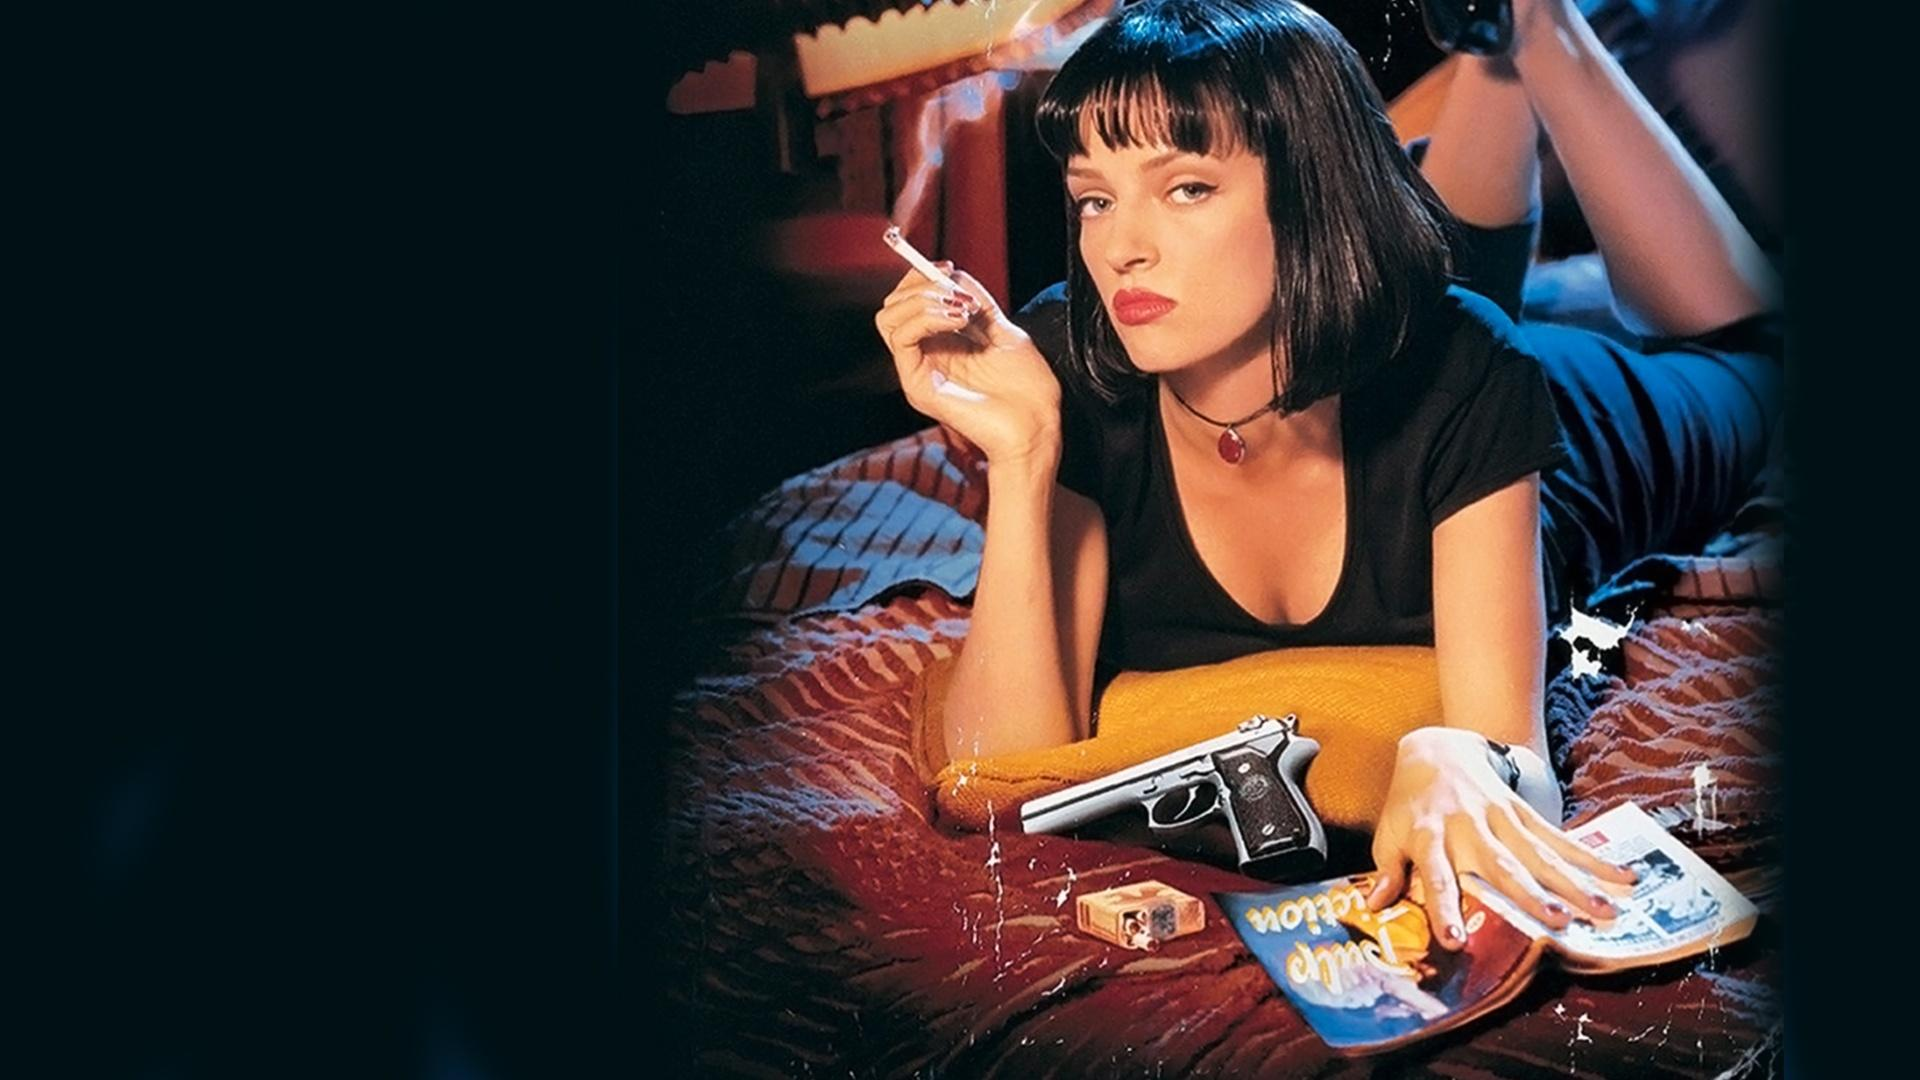 TV8 Pulp fiction